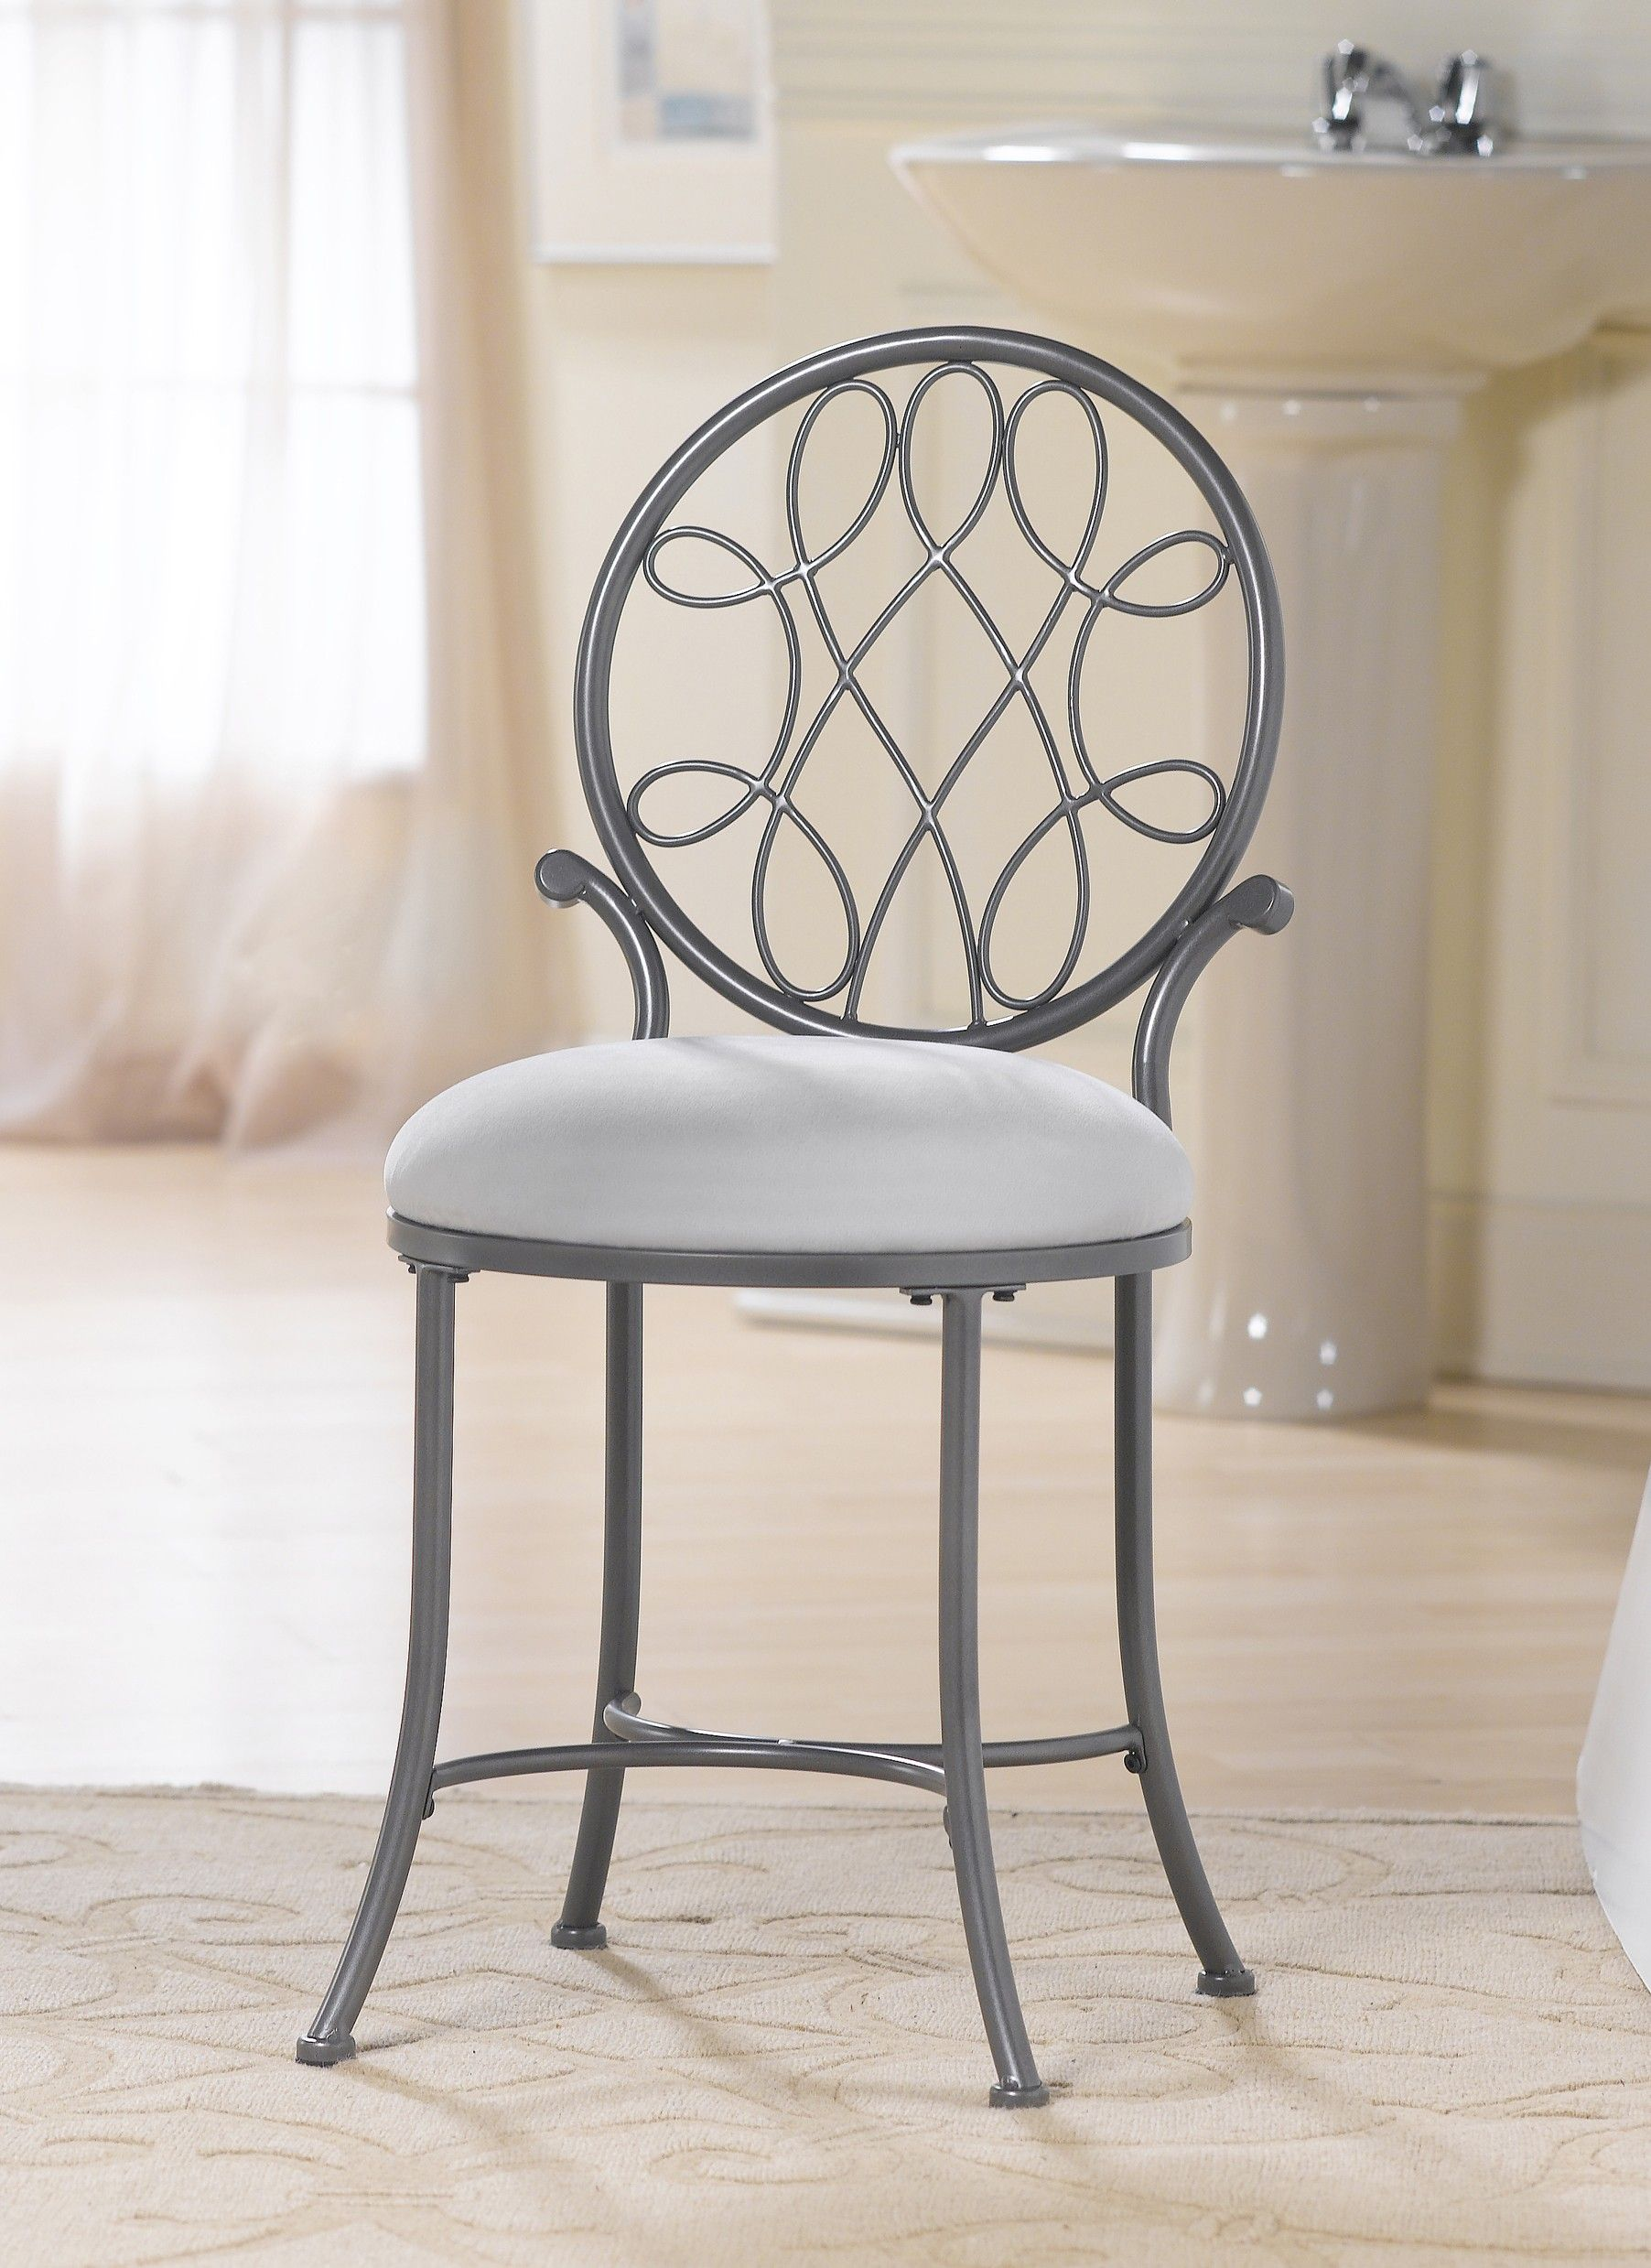 Bathroom Vanity Chairs Crayola Wooden Table And Chair Set Furniture Gray Polished Wrought Iron With Rounded White Tone Padded Seat Ornate Back Rest For Vanitychair